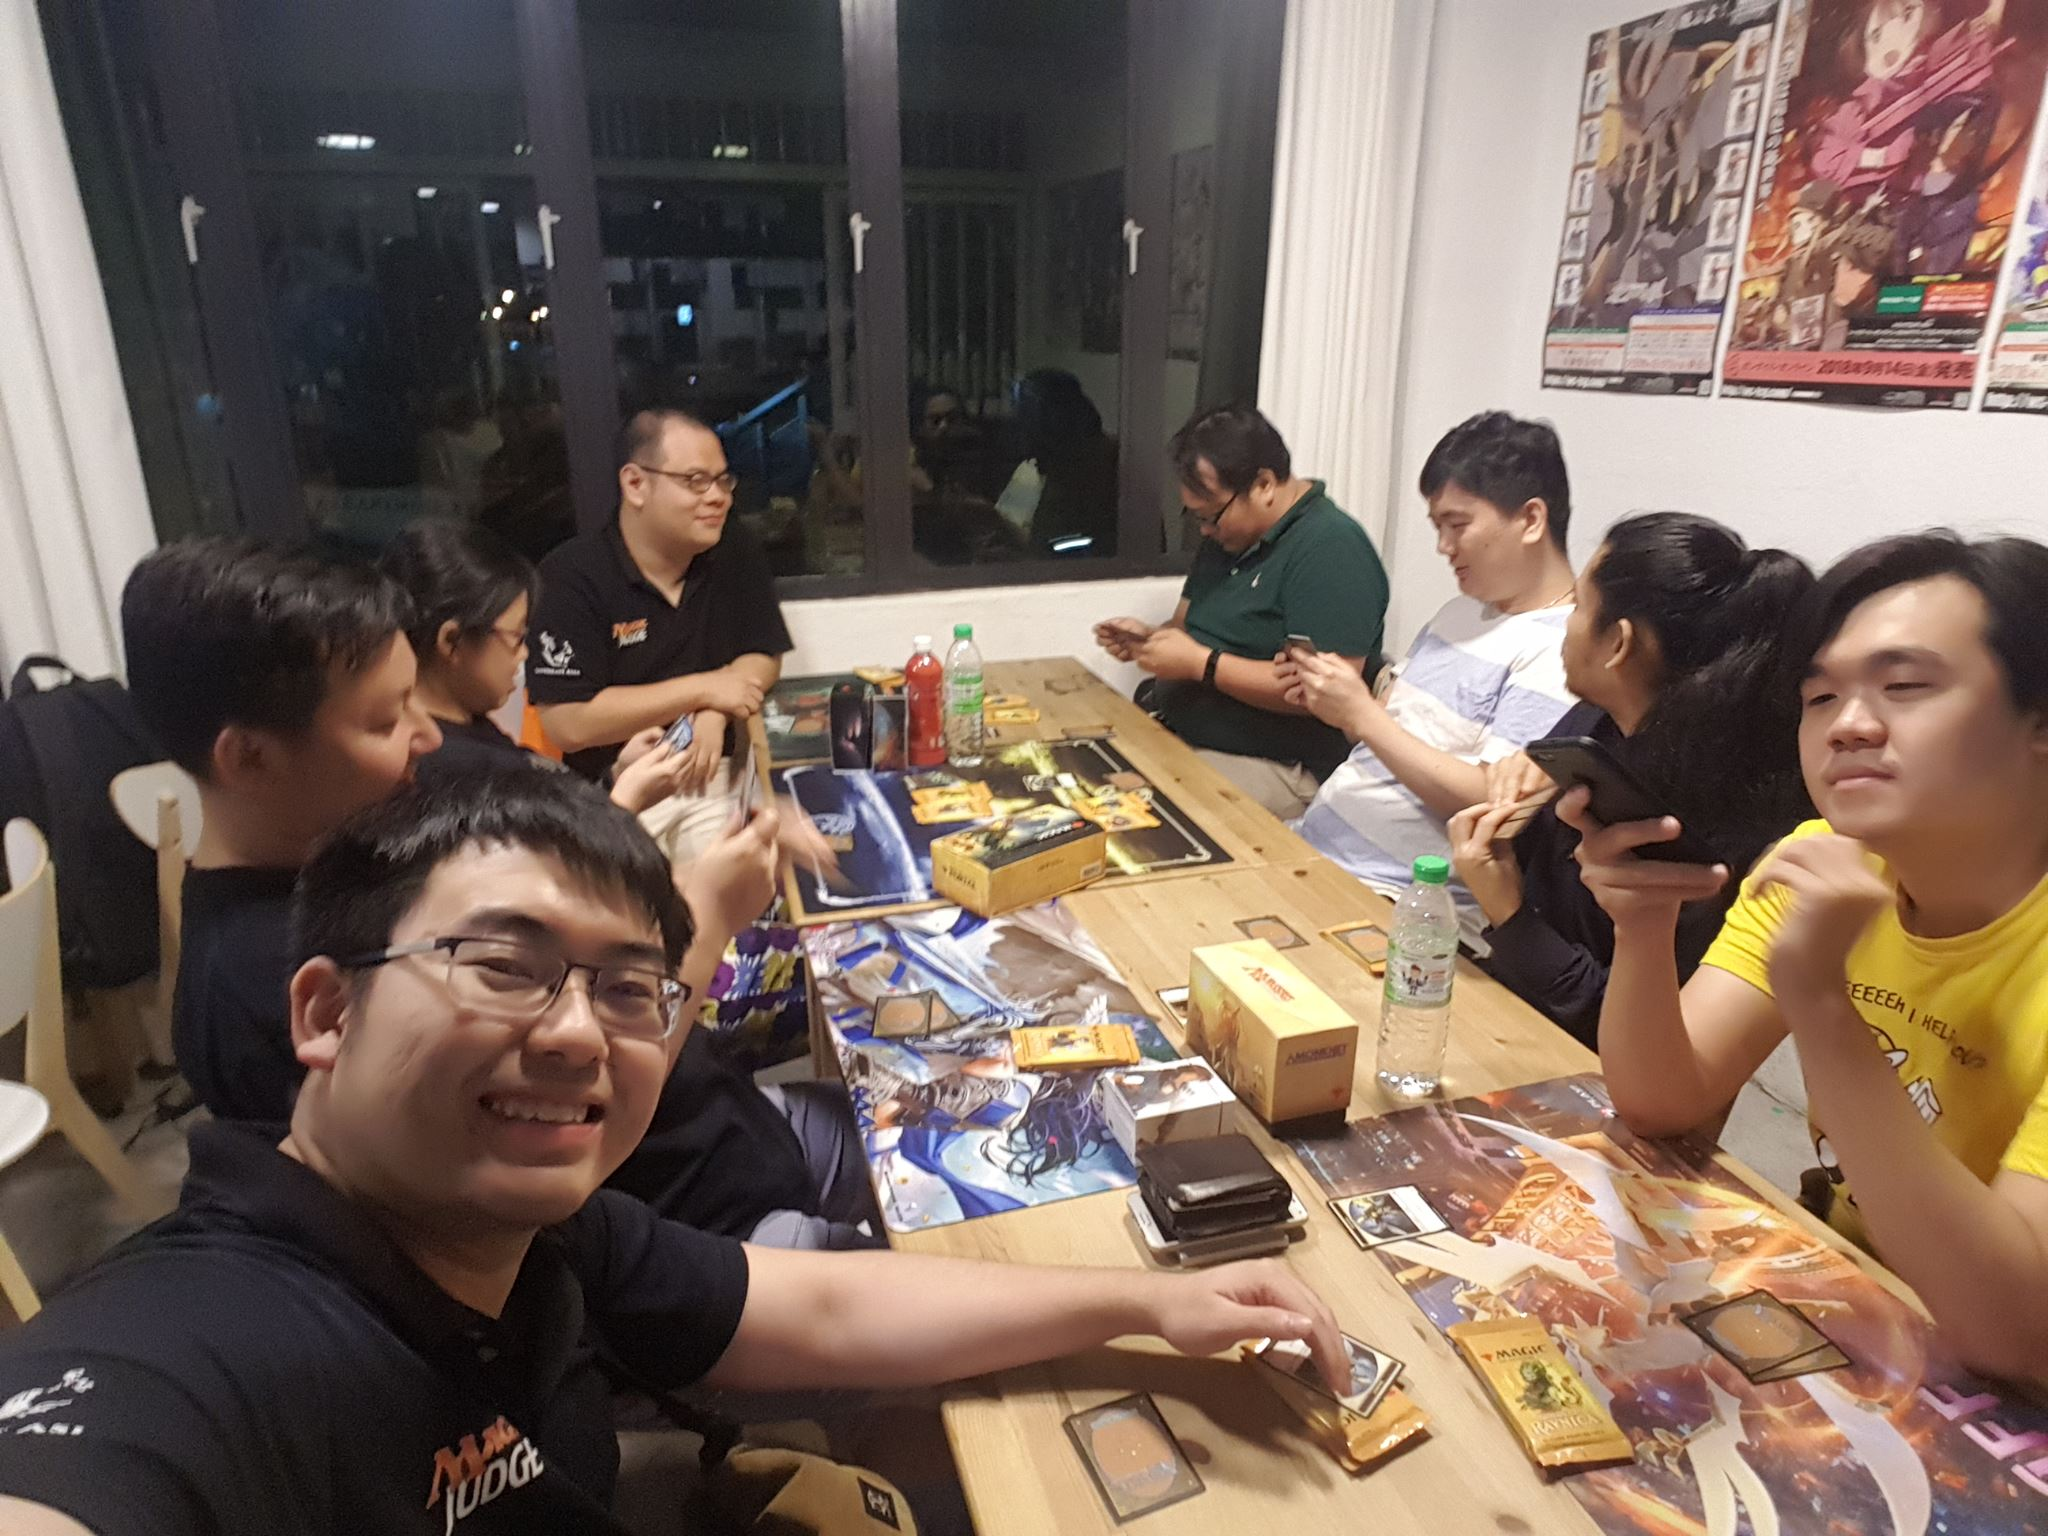 Singaporean Judges and Zie Aun Tan at their LGS drafting around 2am - plus stand-in scorekeeper